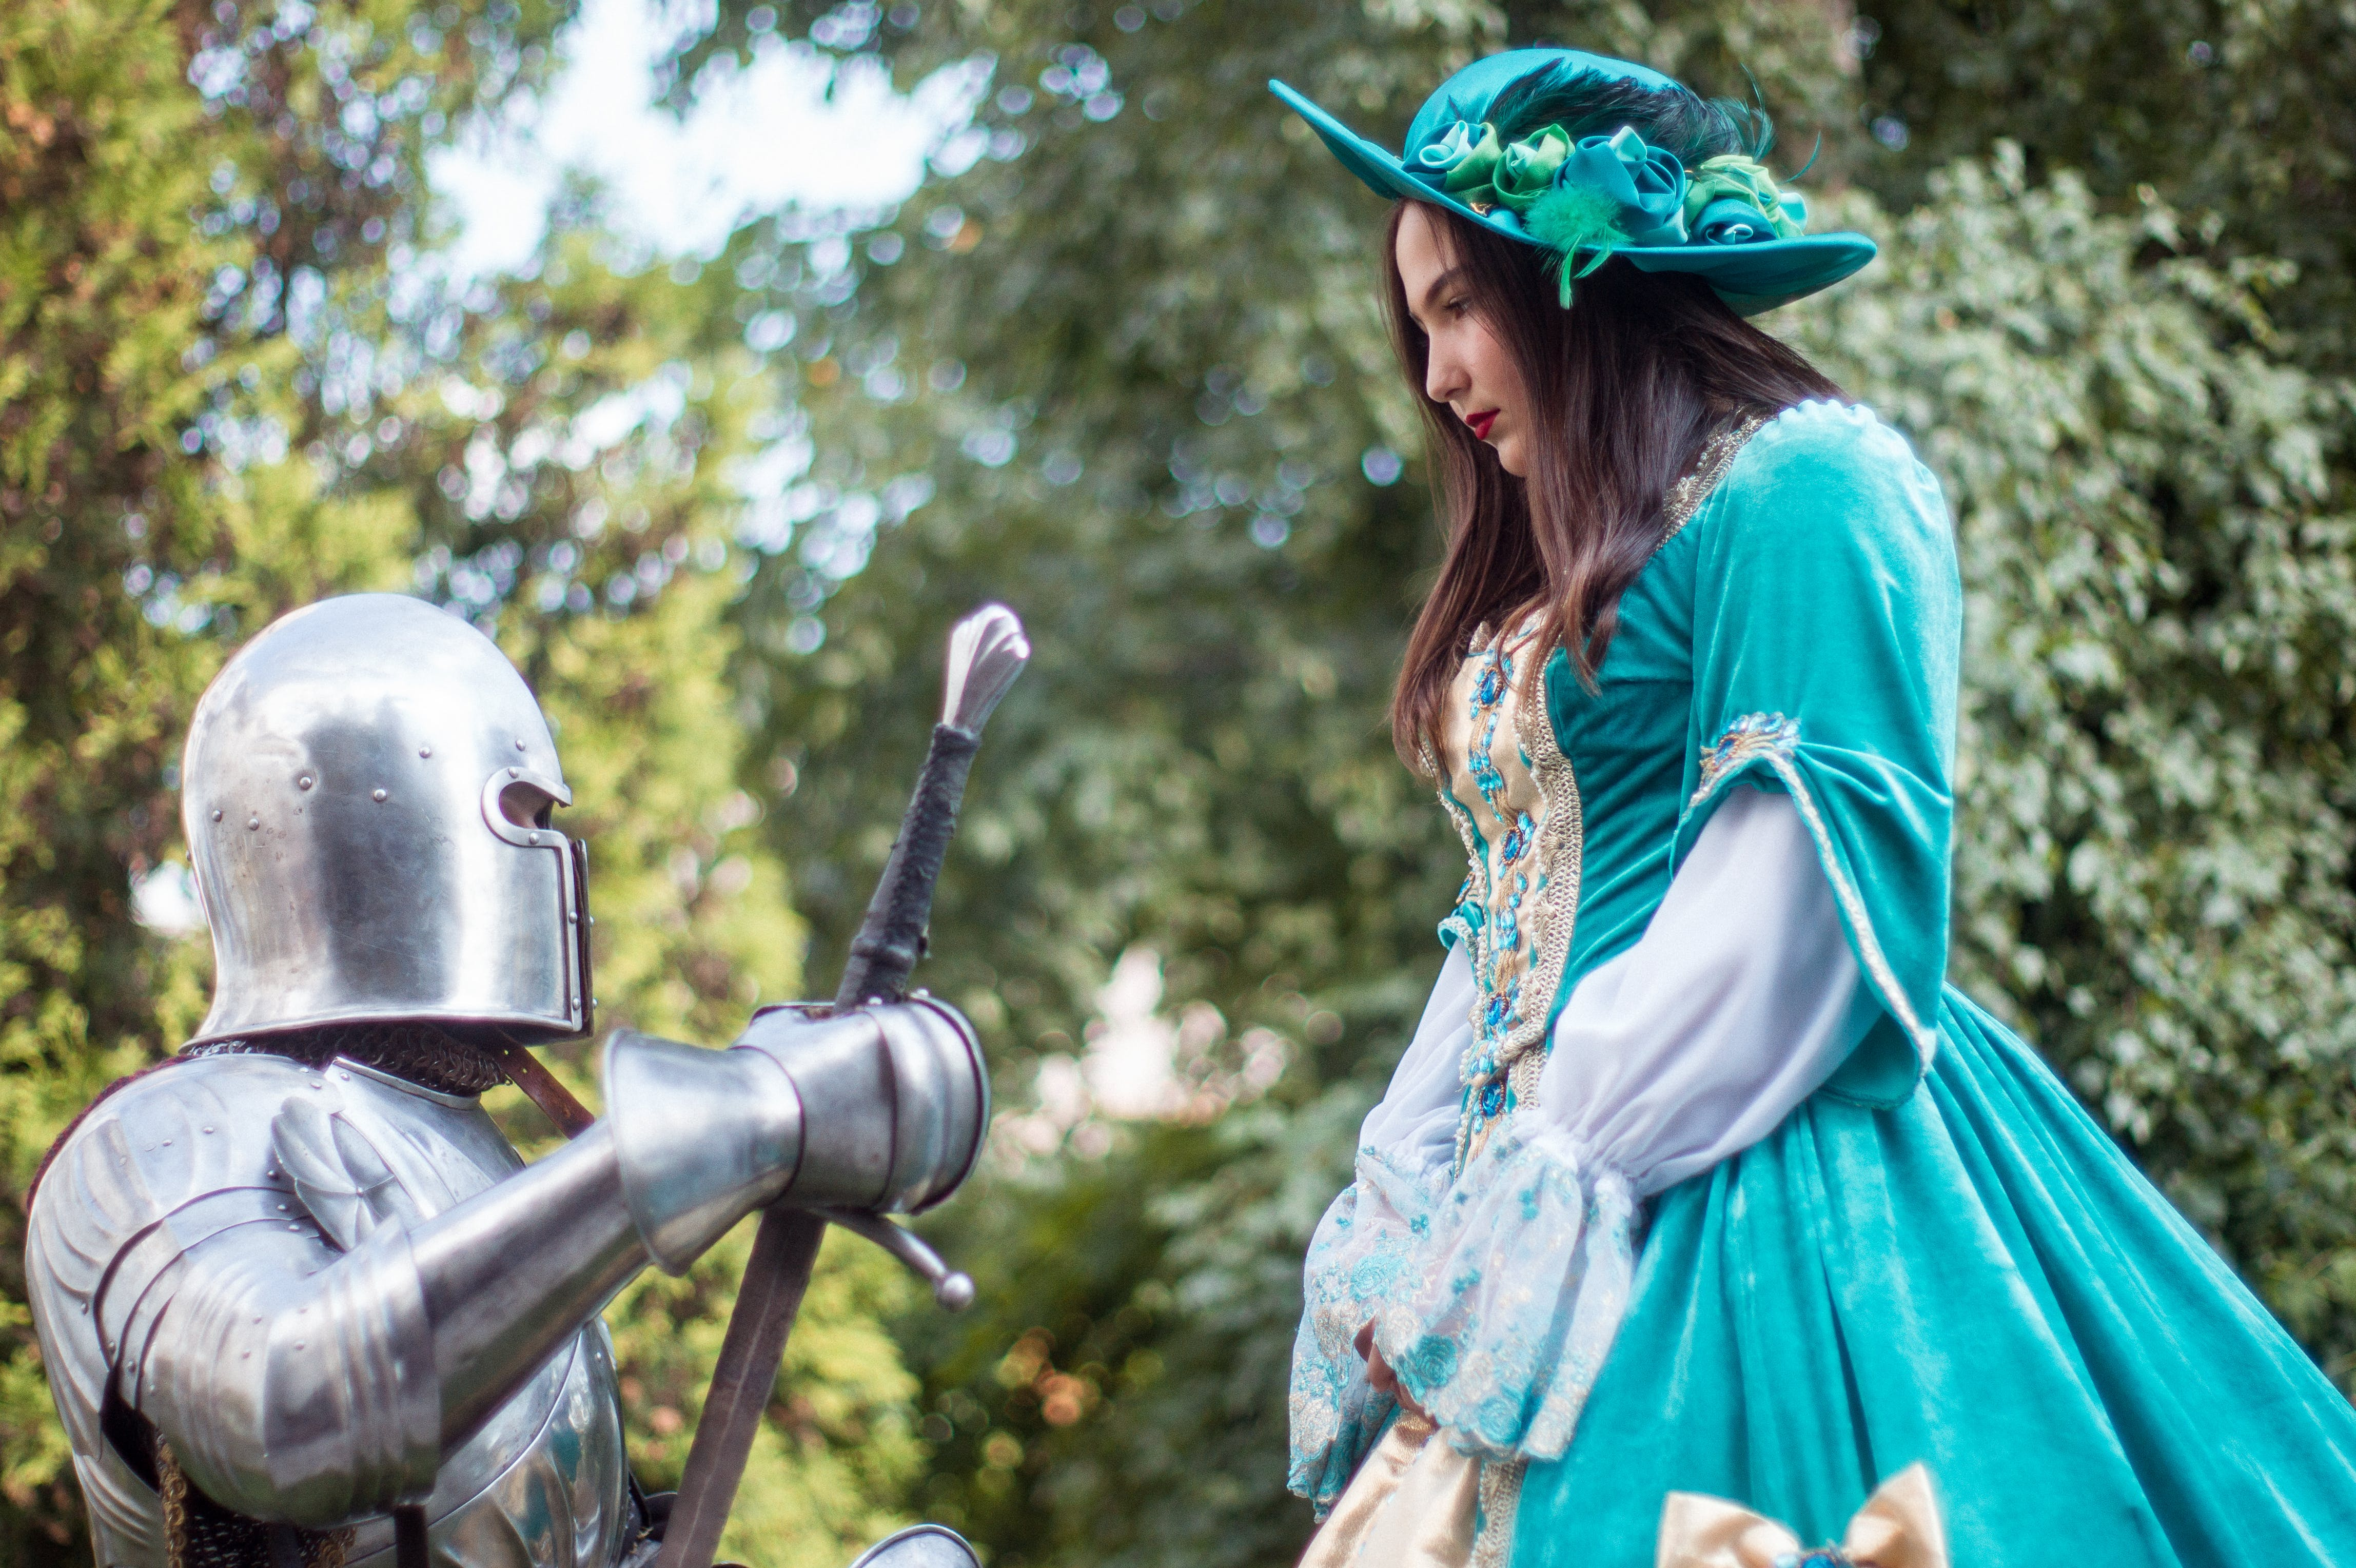 Knight In-front of Woman in Green Dress